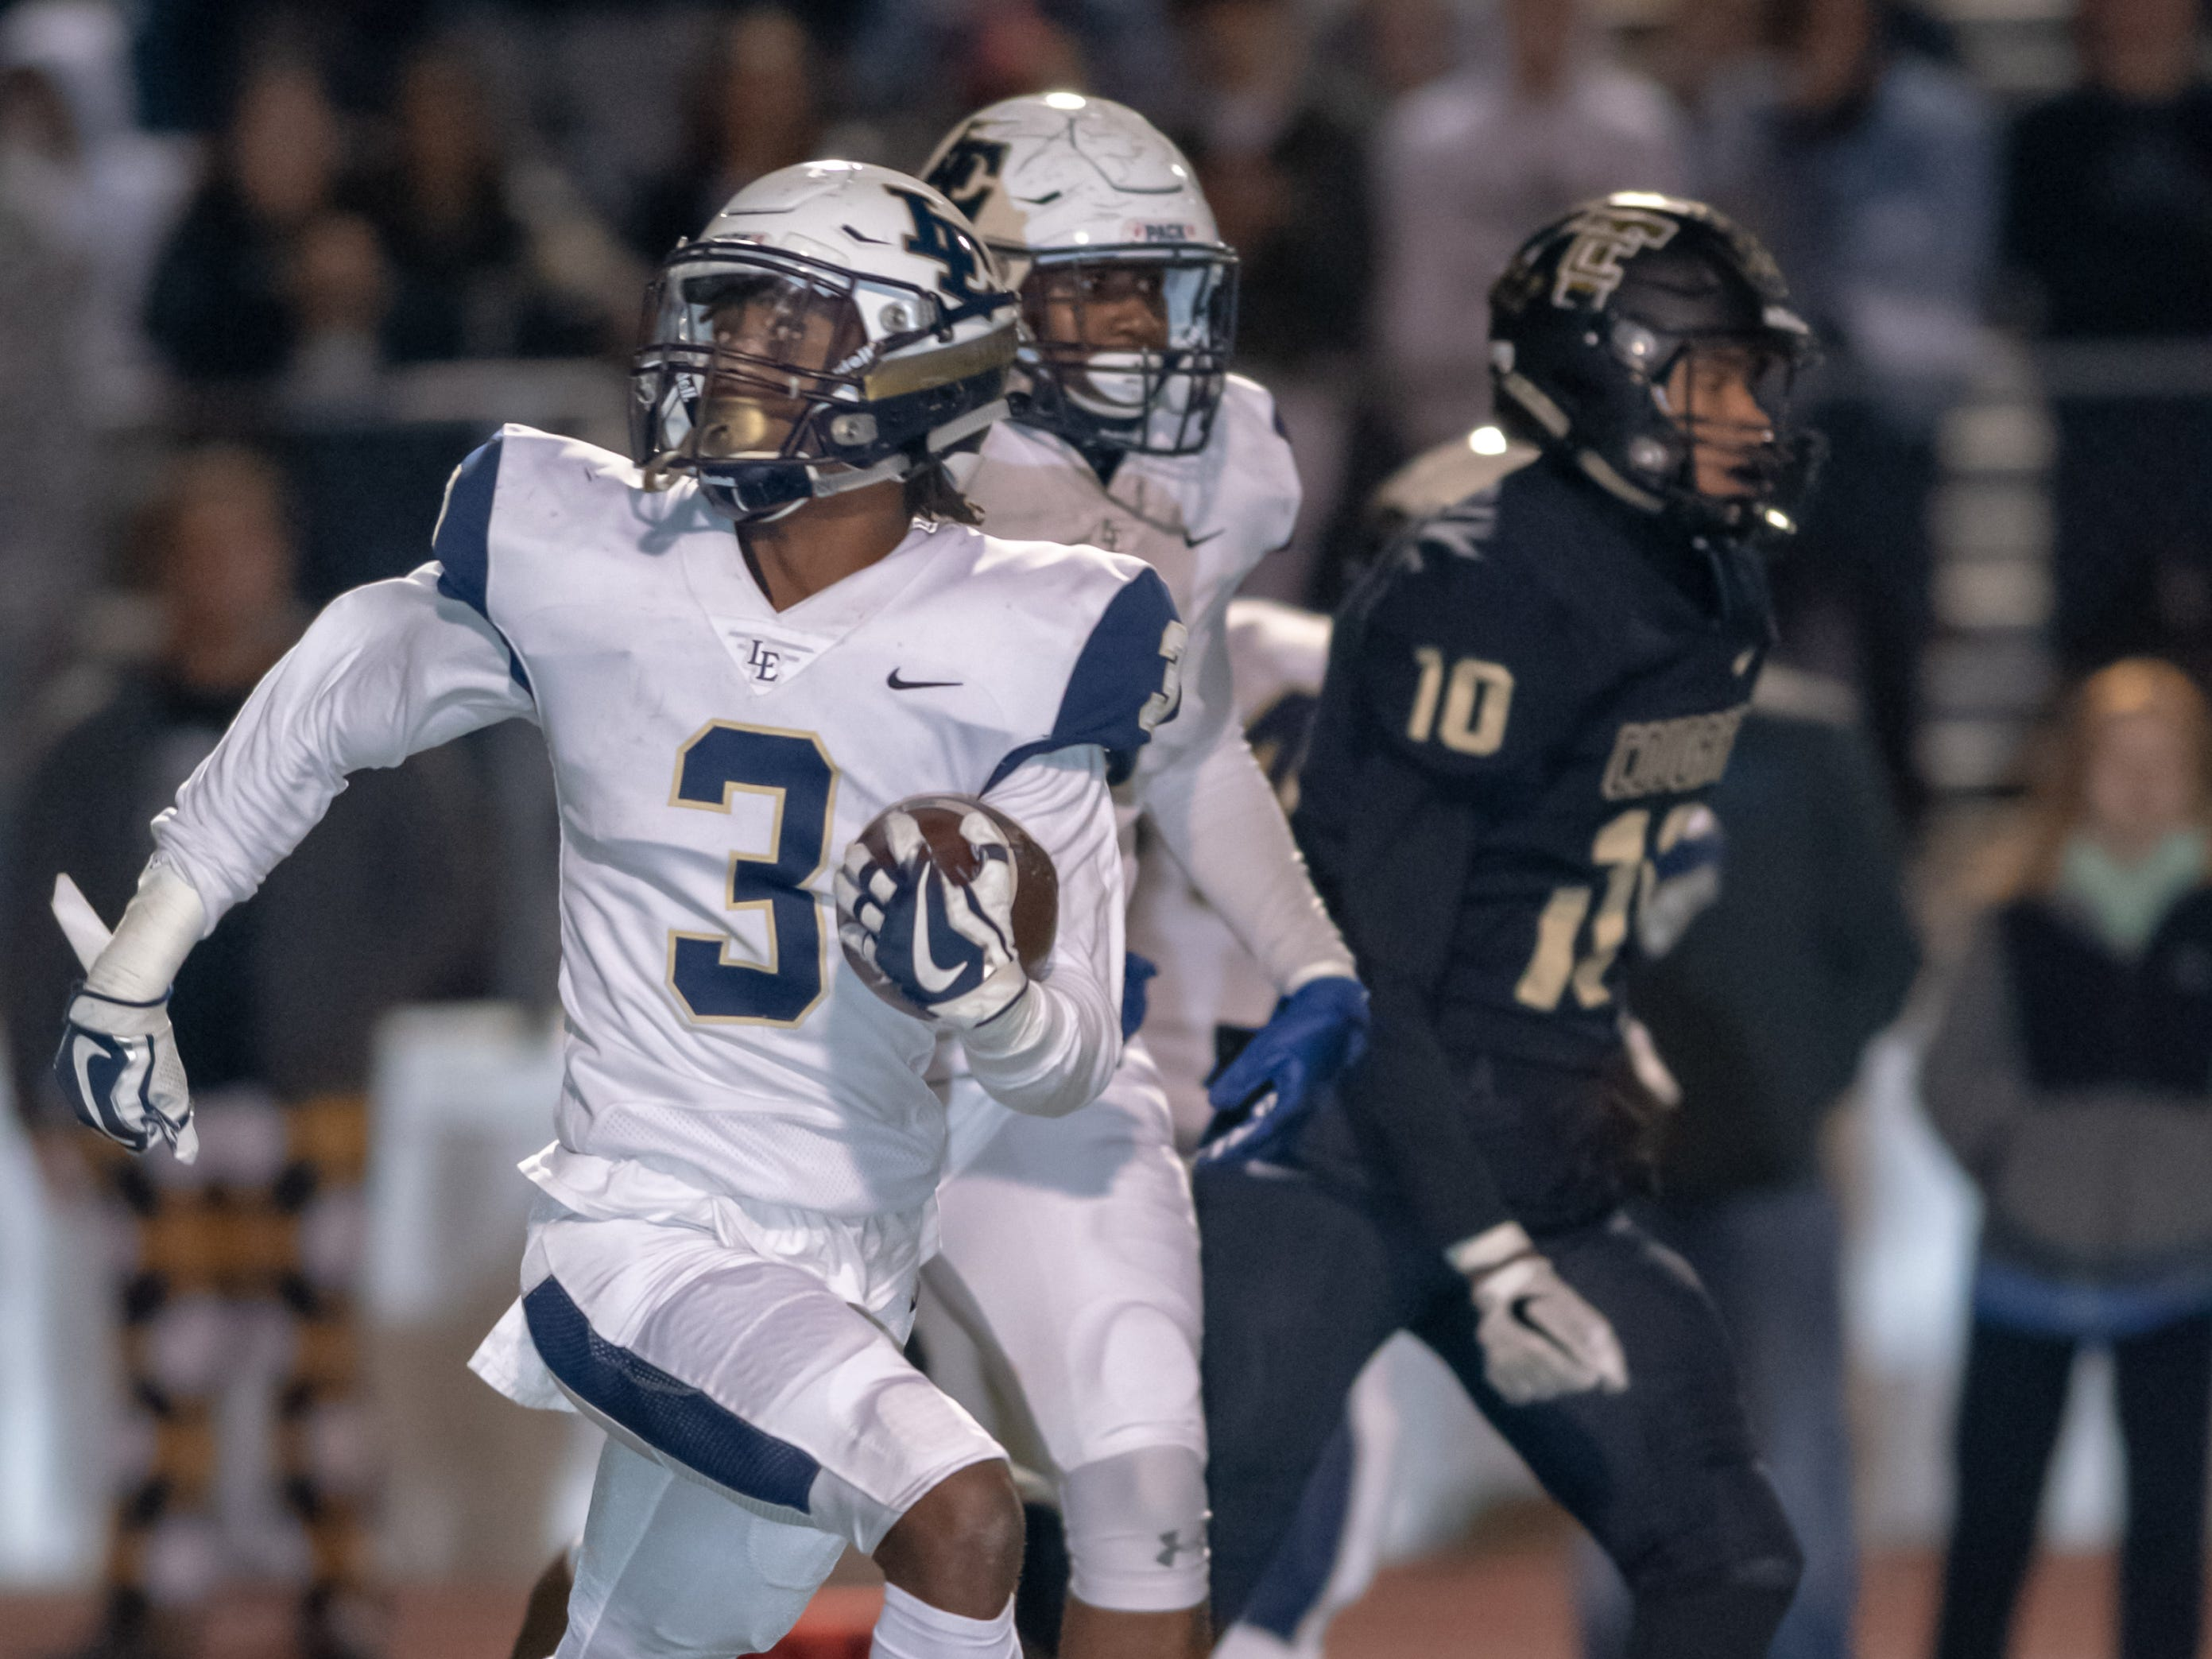 Little Elm (Texas) defensive back Brandon Crossley (3) committed to join the CSU football team on Monday. He chose the Rams over multiple Power 5 offers.